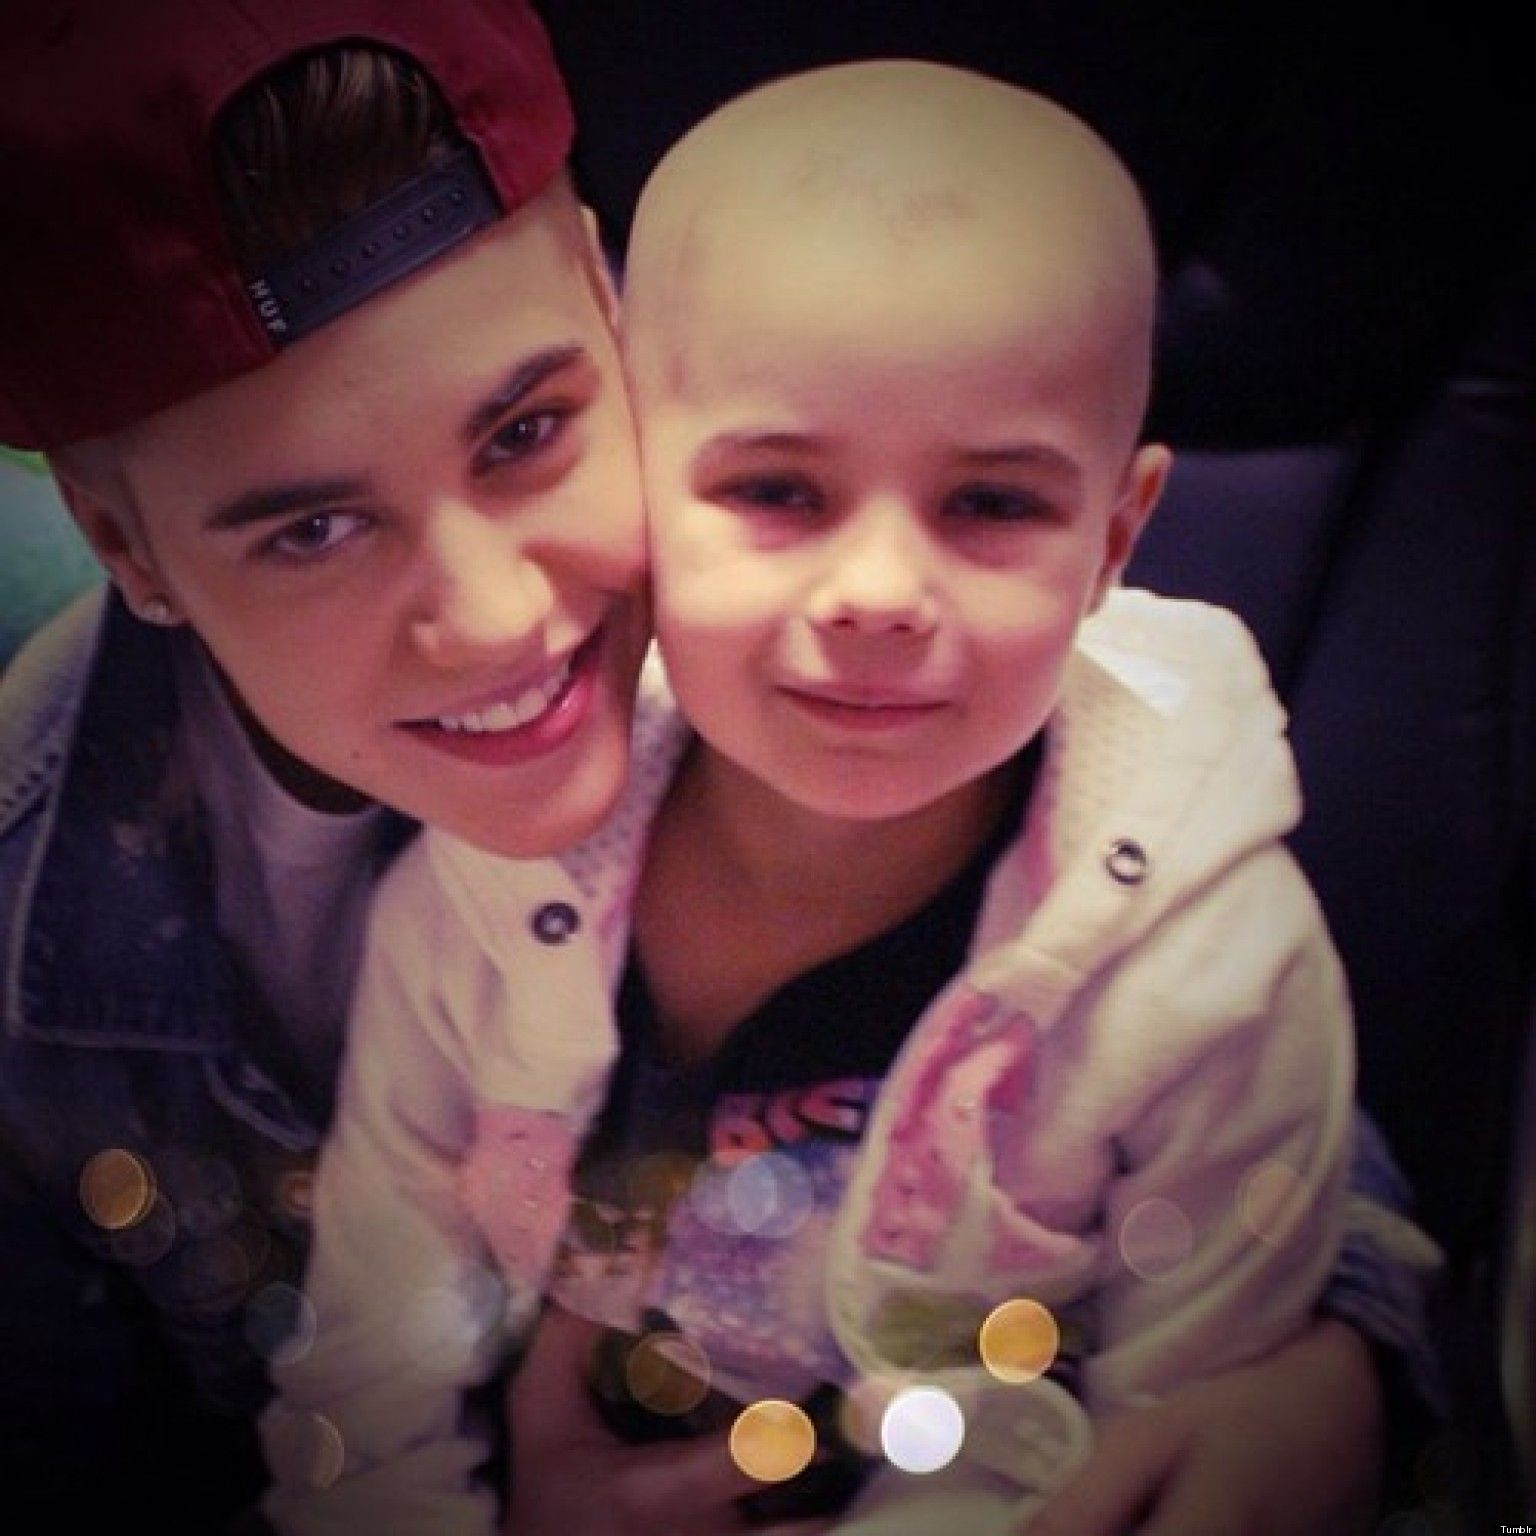 13. Delayed Concert To Visit Young Cancer Patient